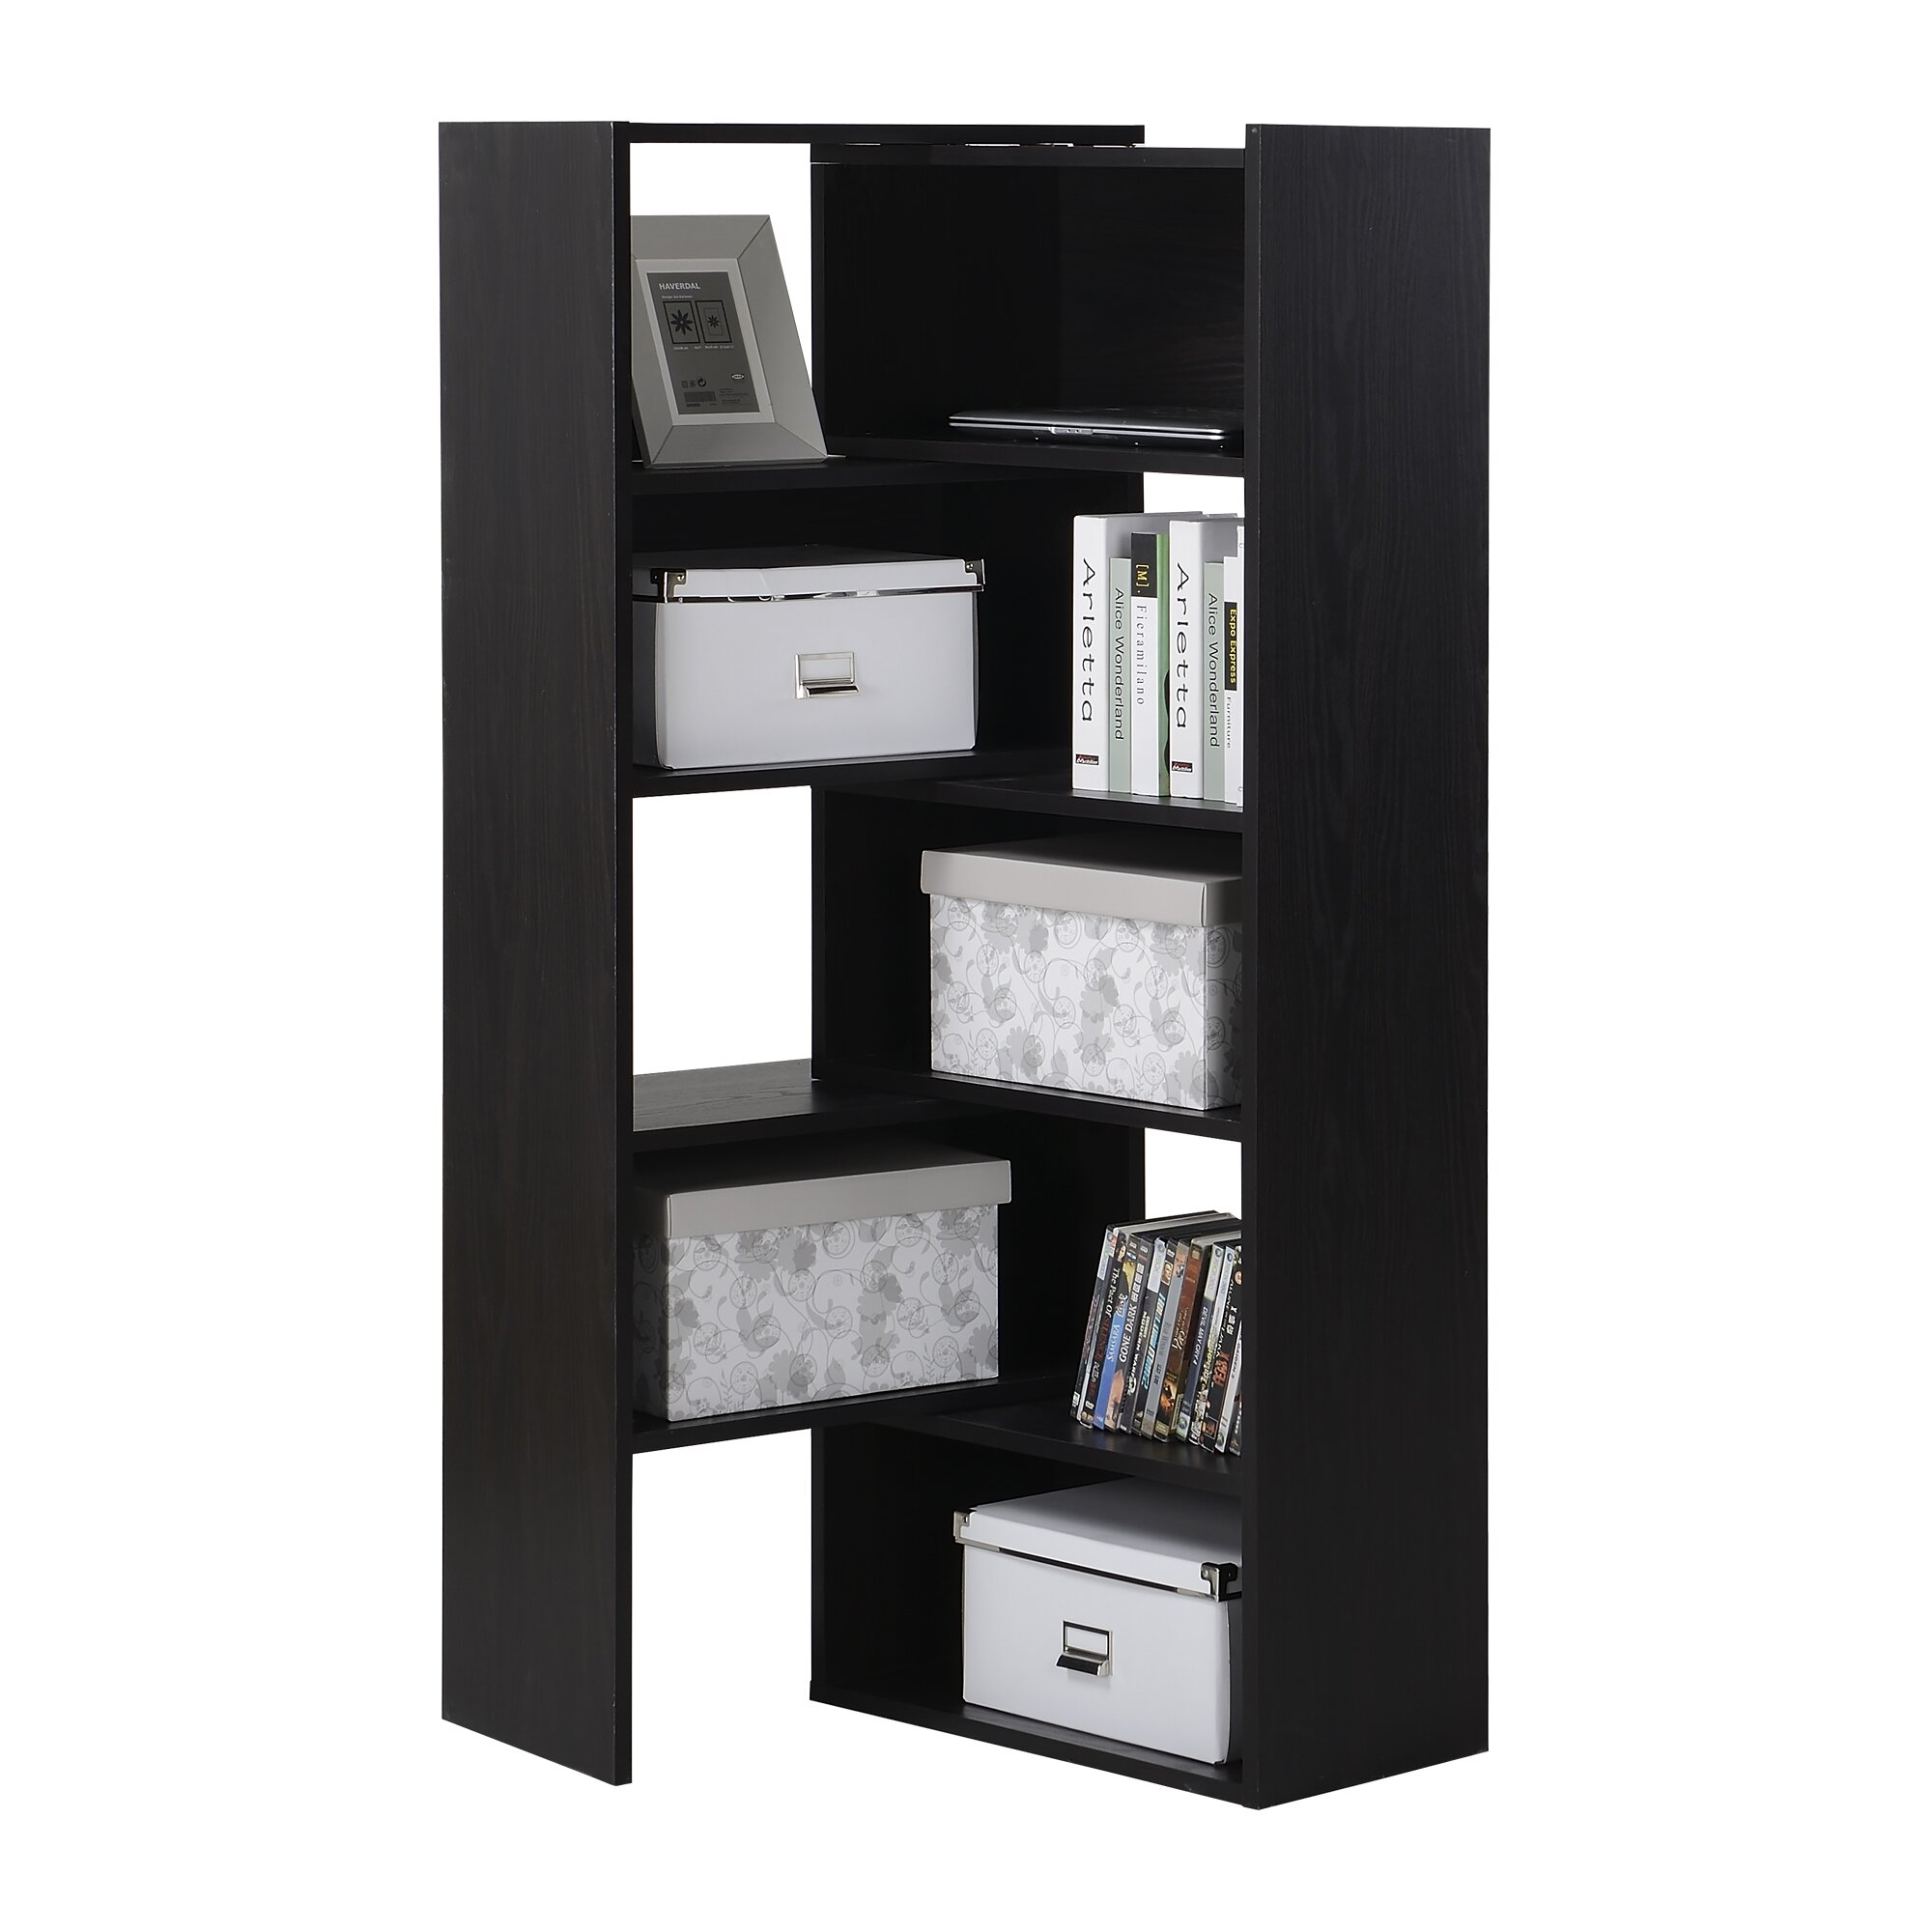 homestar 59 cube unit bookcase reviews wayfair. Black Bedroom Furniture Sets. Home Design Ideas